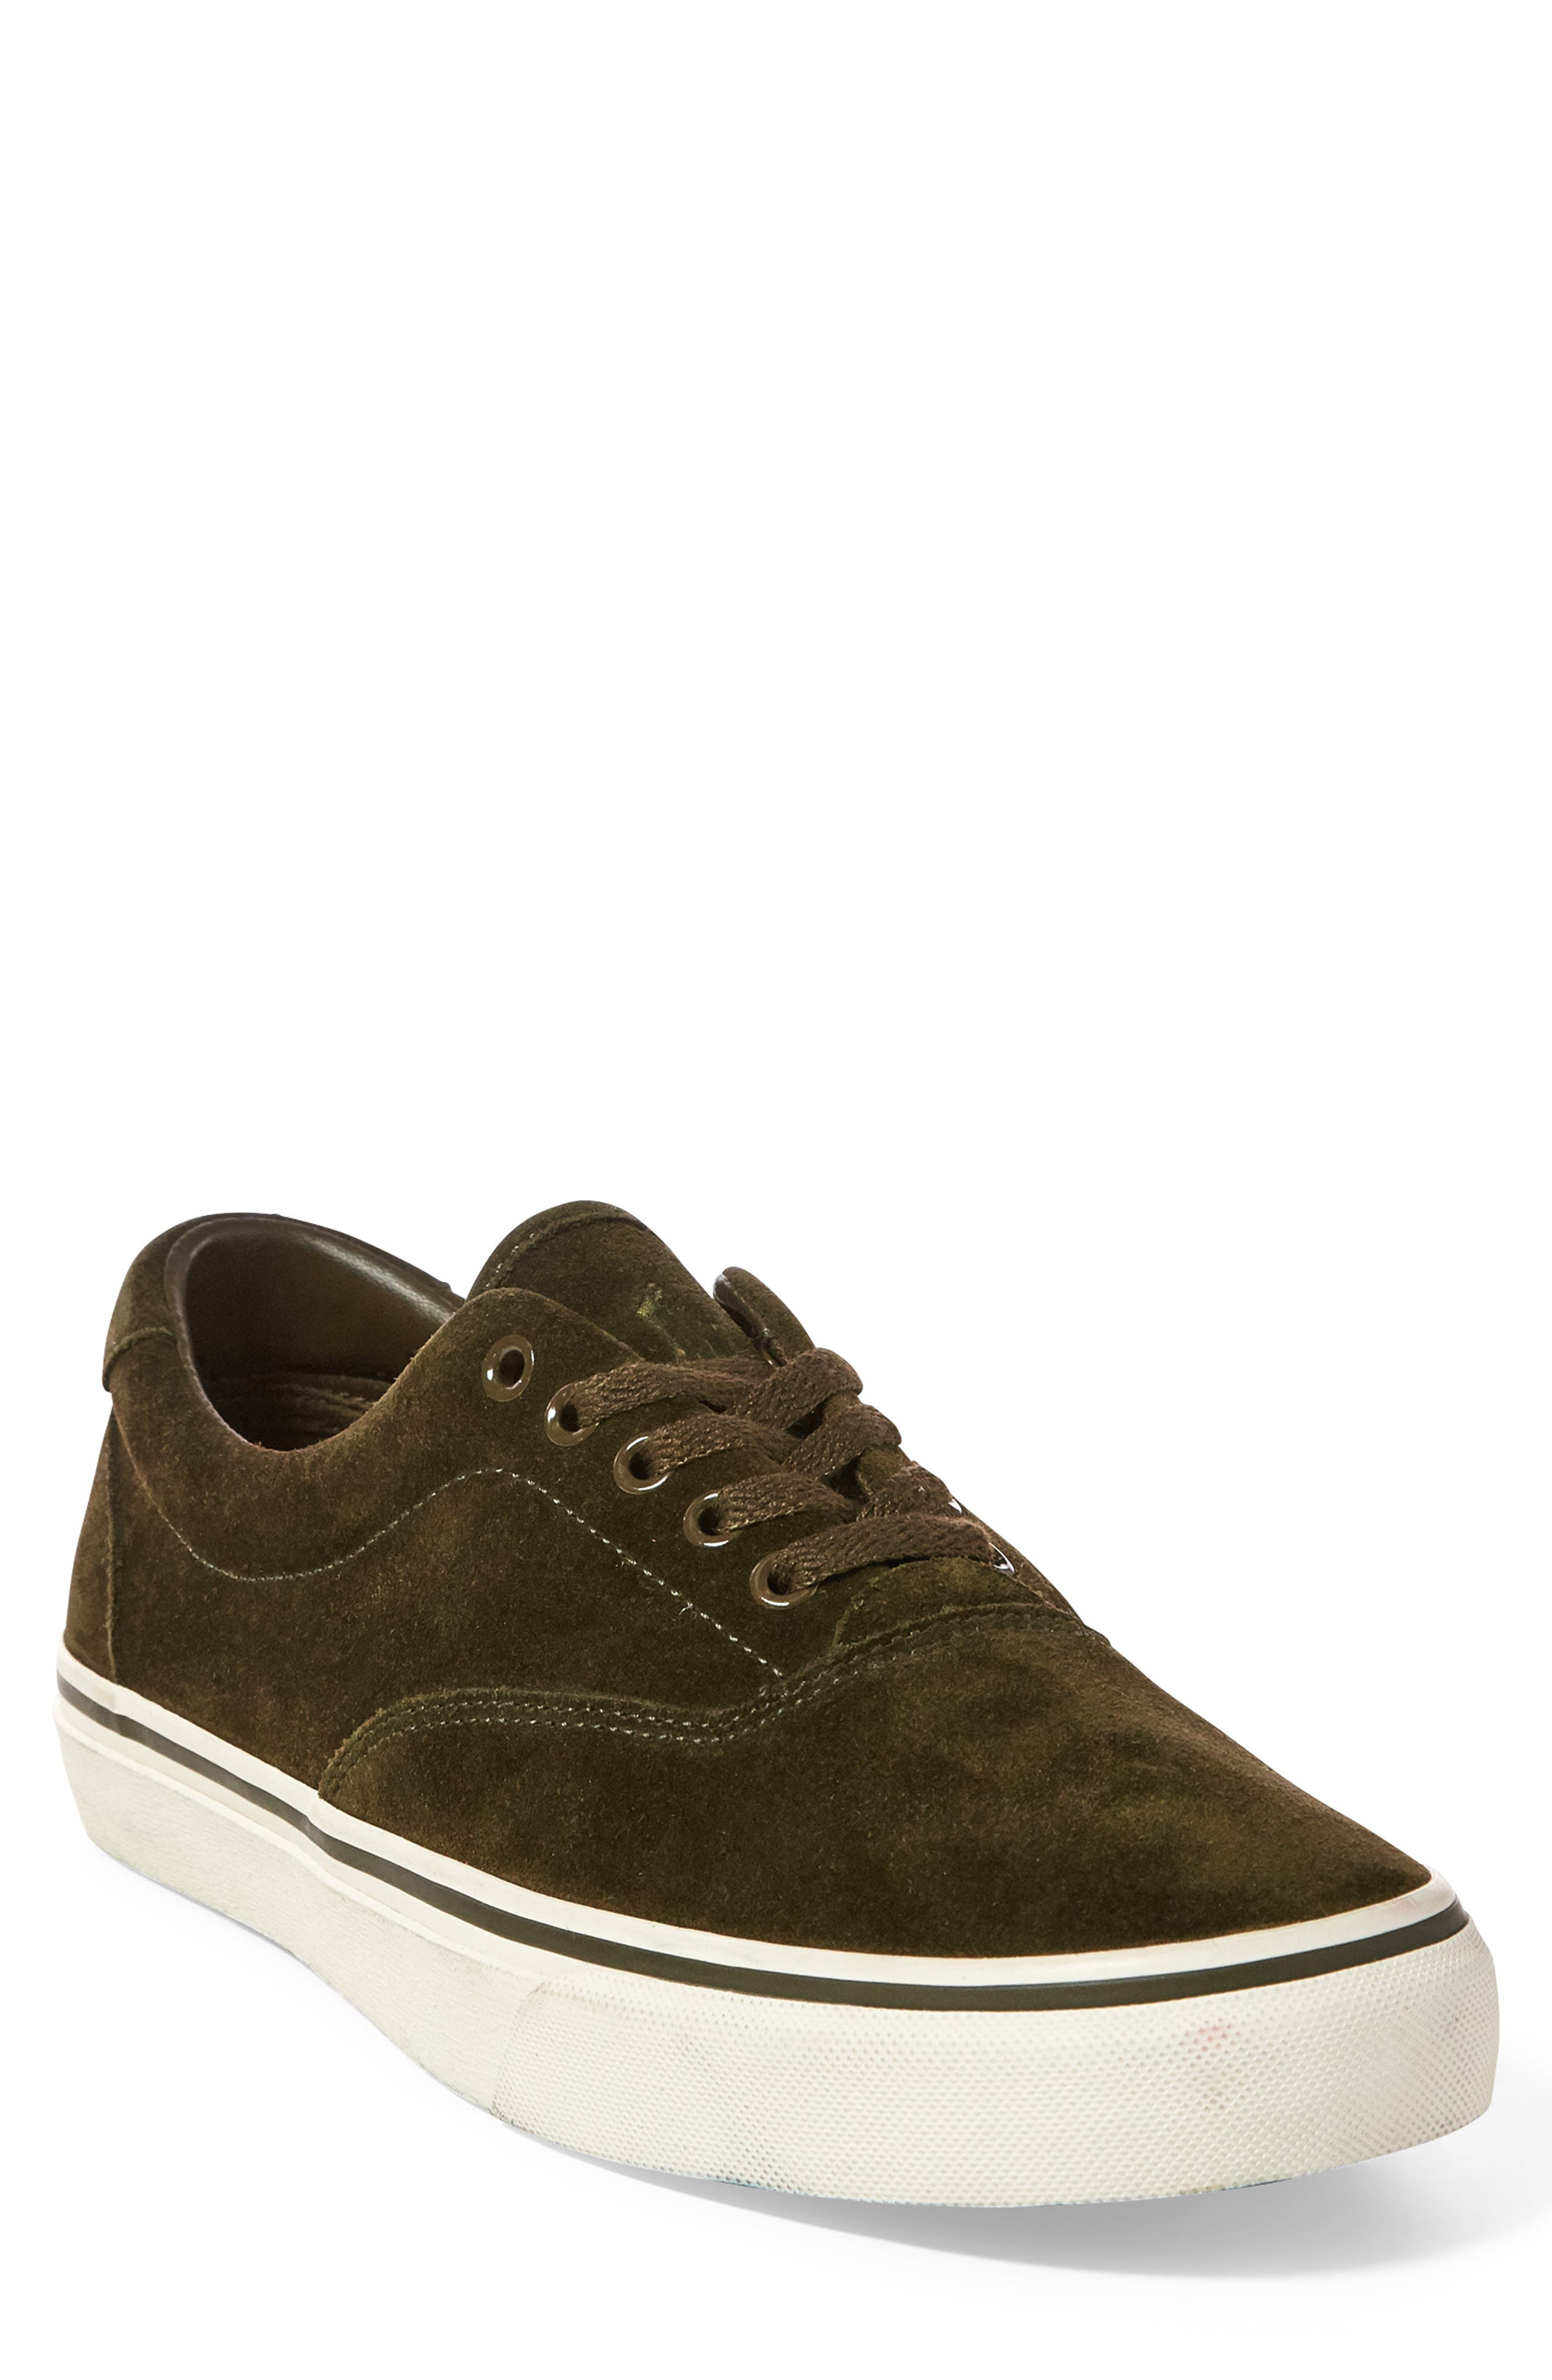 Thorton Sneaker,                             Main thumbnail 1, color,                             DEEP OLIVE SUEDE